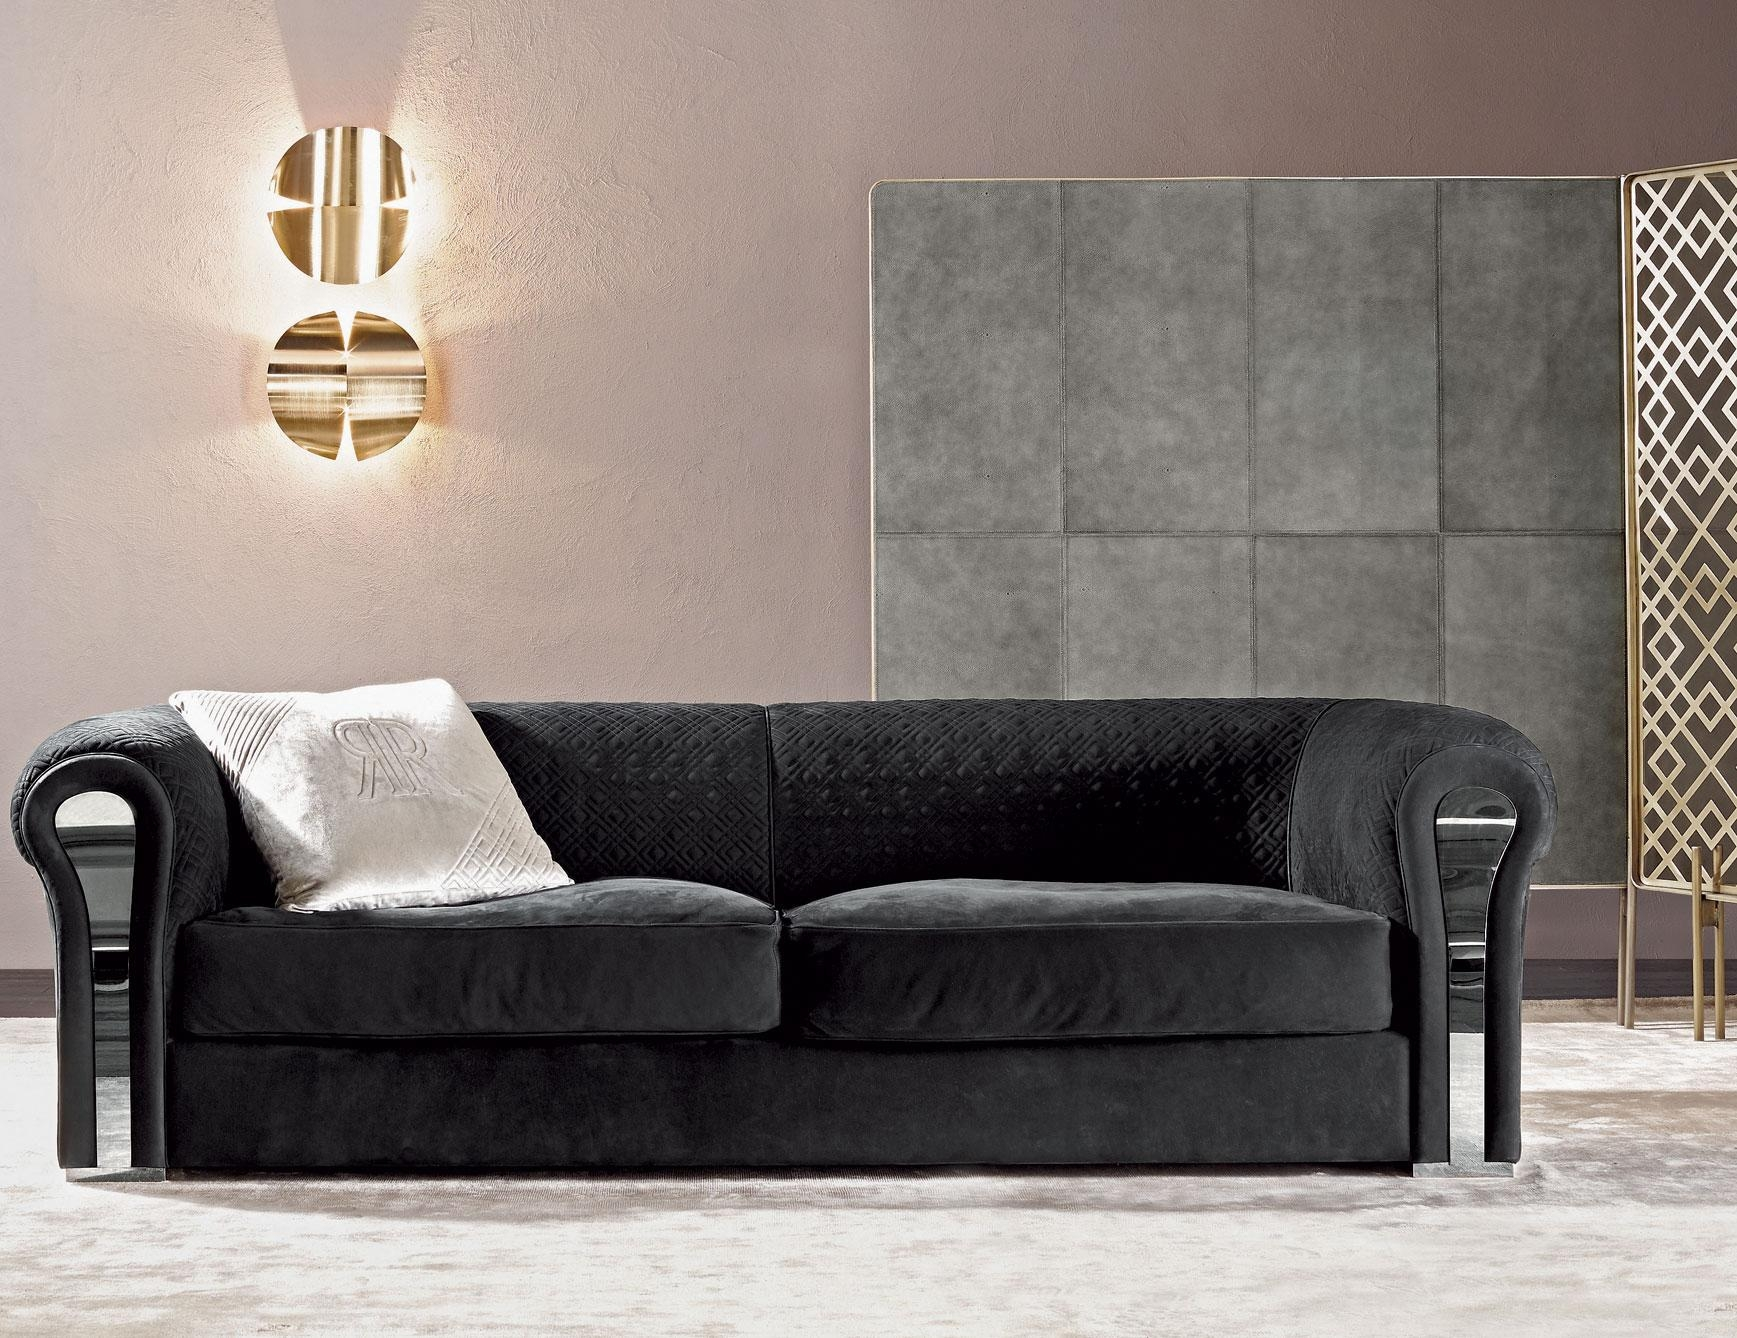 Sofas Center : High End Sofasnd Sectional Coucheshigh Onlinehigh Intended For High End Sofa (Image 20 of 20)